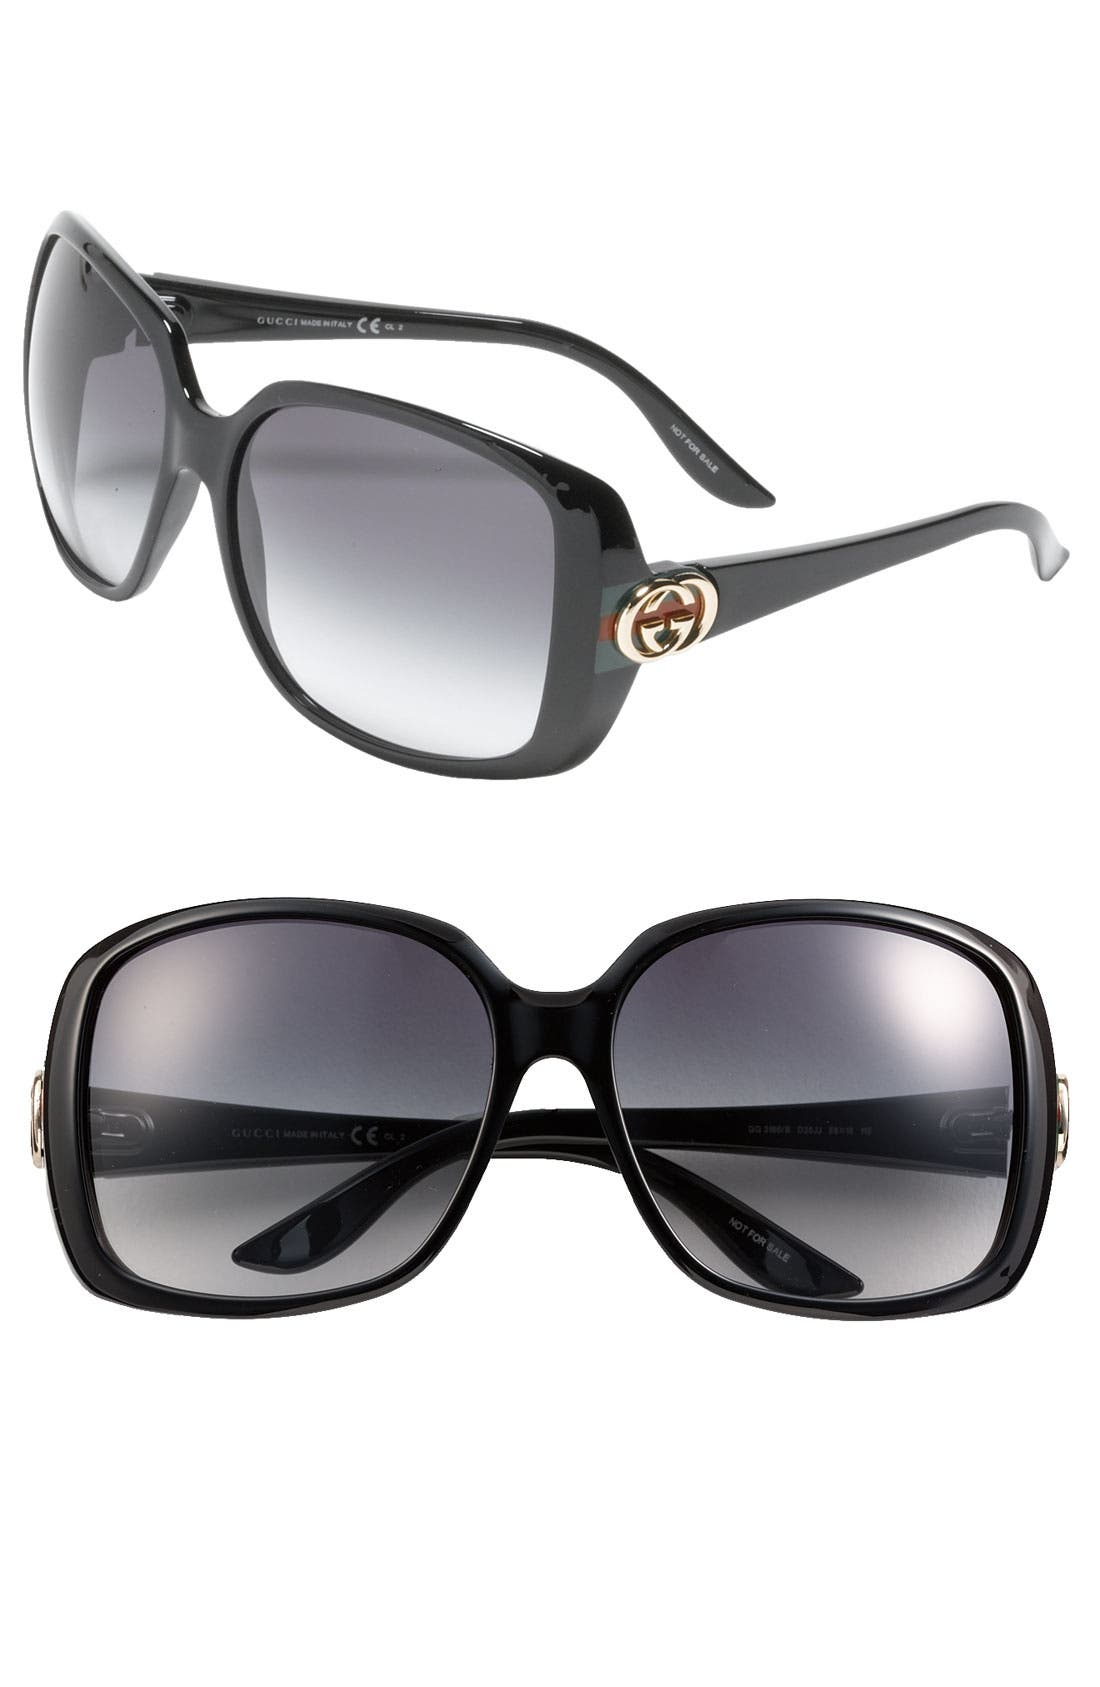 Alternate Image 1 Selected - Gucci 59mm Oversized Square Sunglasses